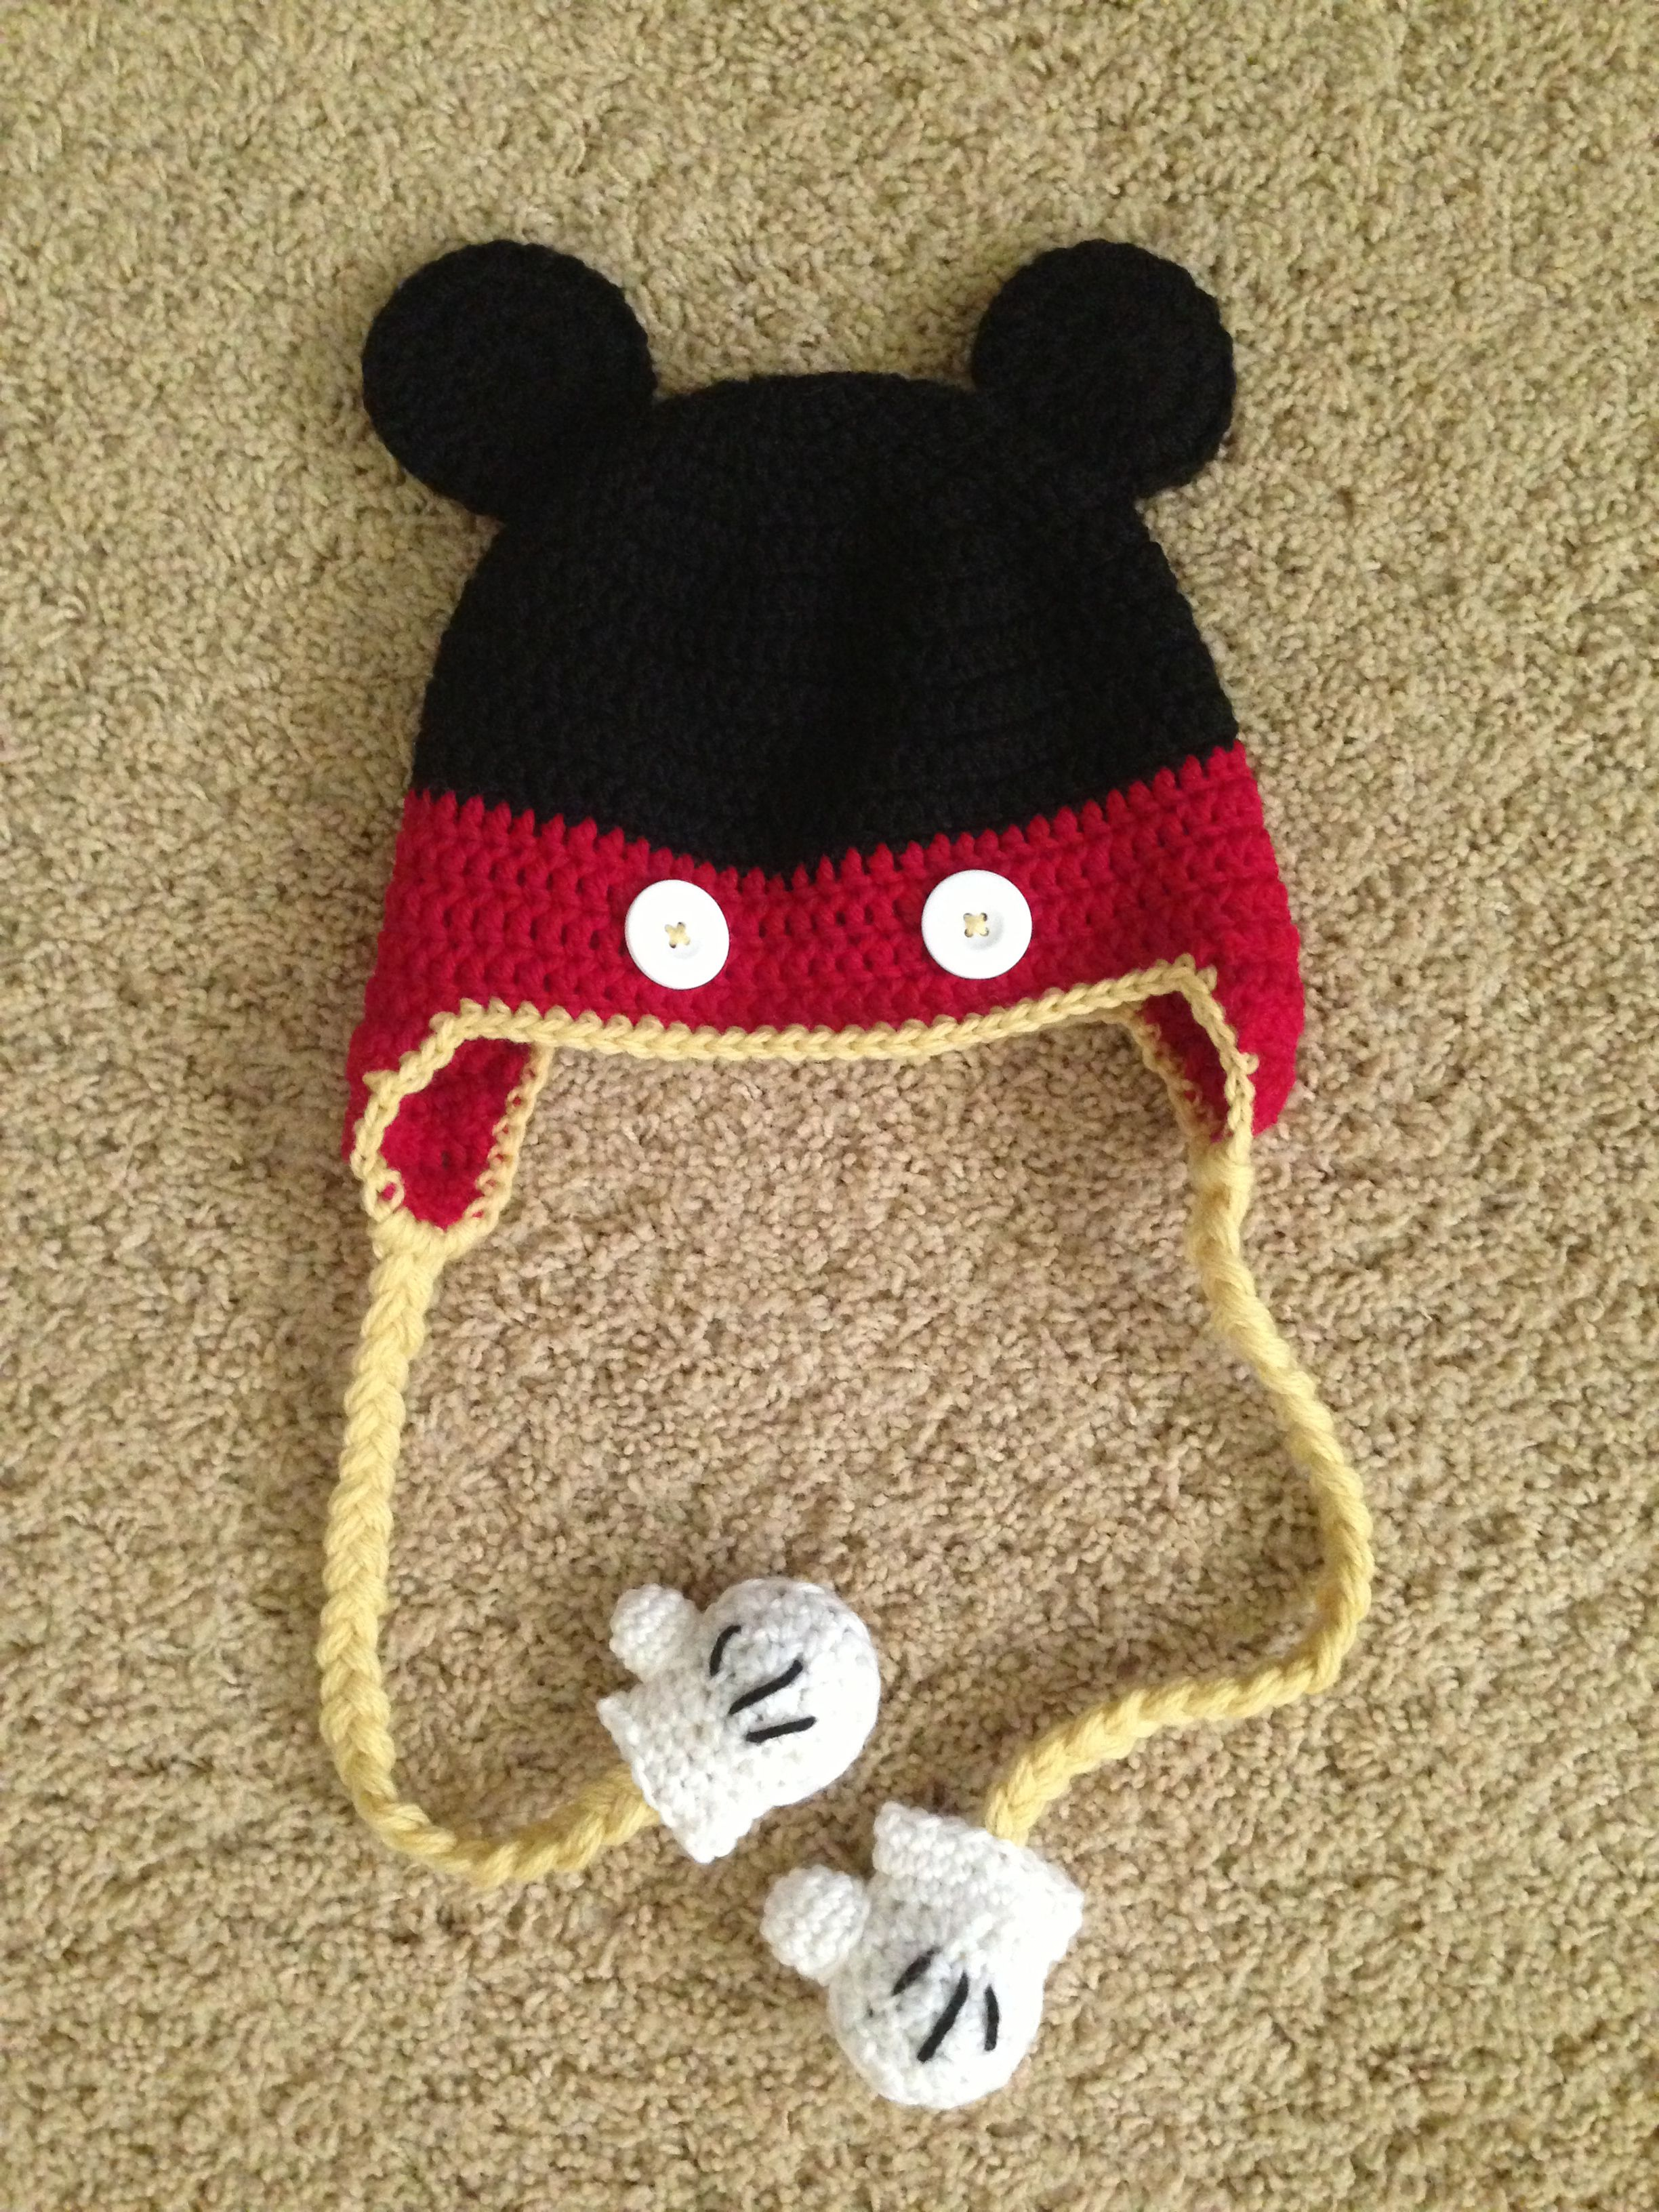 Mickey Mouse Knitted Hat Pattern : Crochet Mickey Mouse hat Gorros de bebe Pinterest